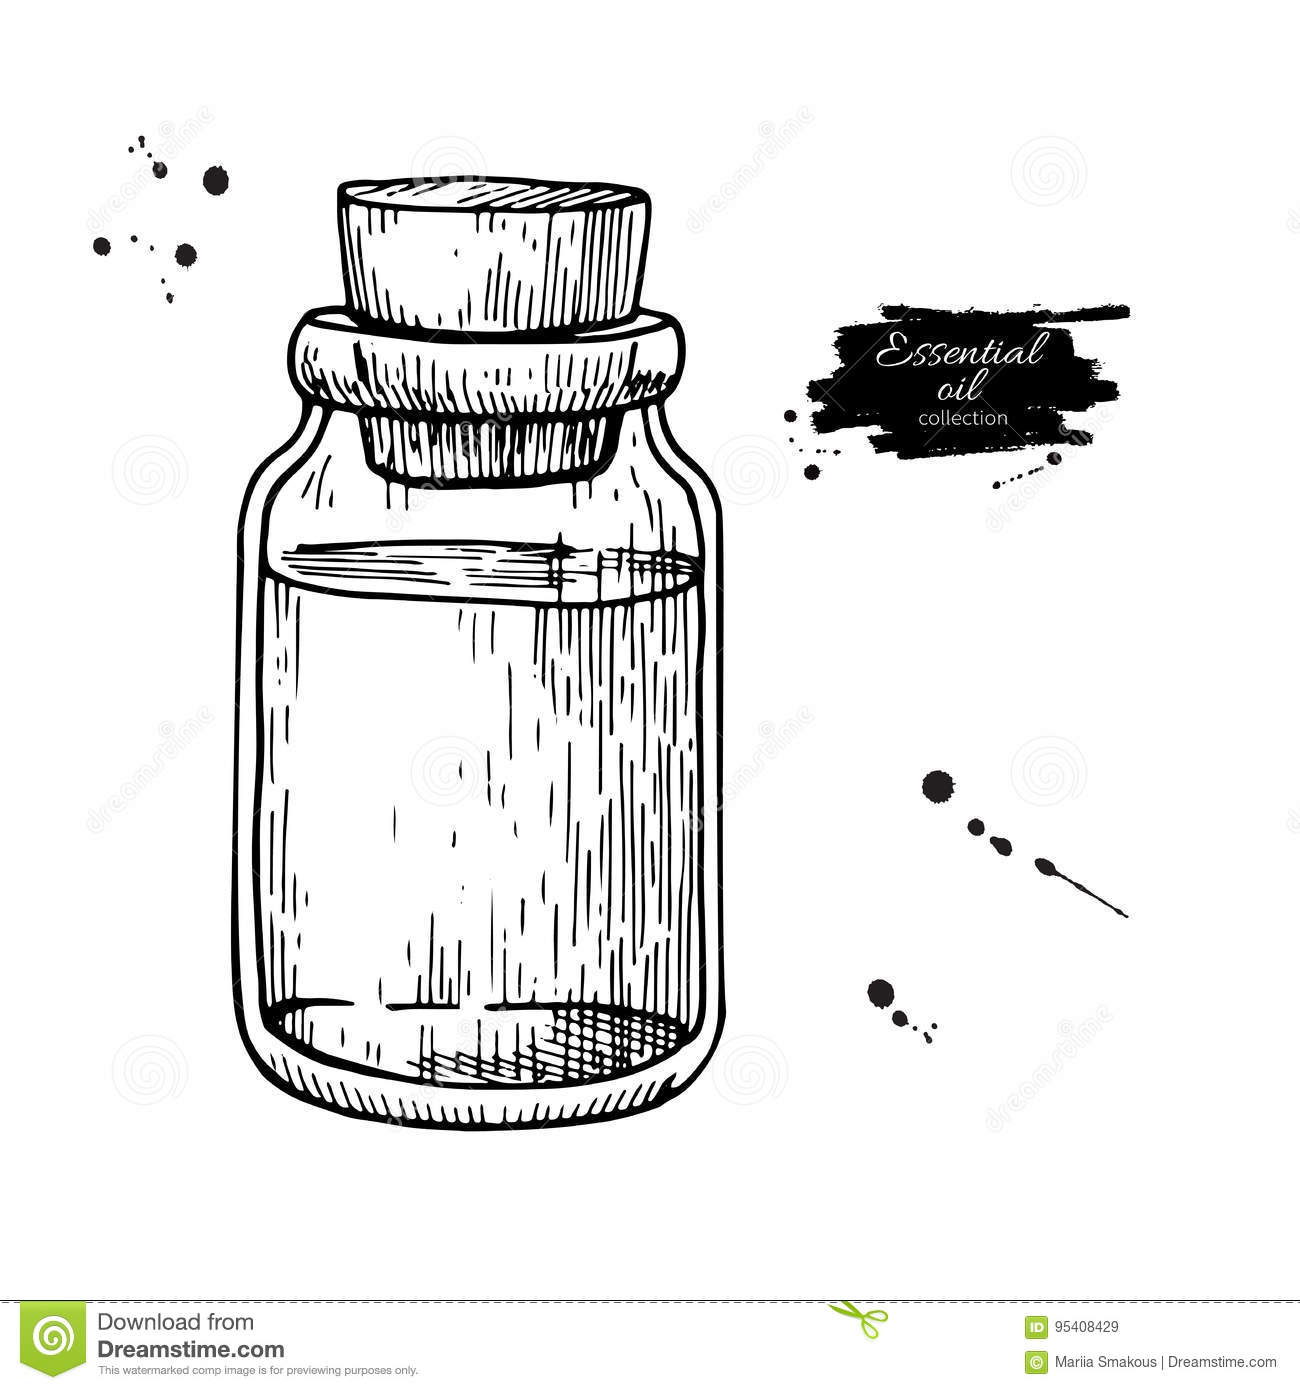 Essential oil glass bottle hand drawn vector illustration. Isolated drawing for Aromatherapy treatment, alternative